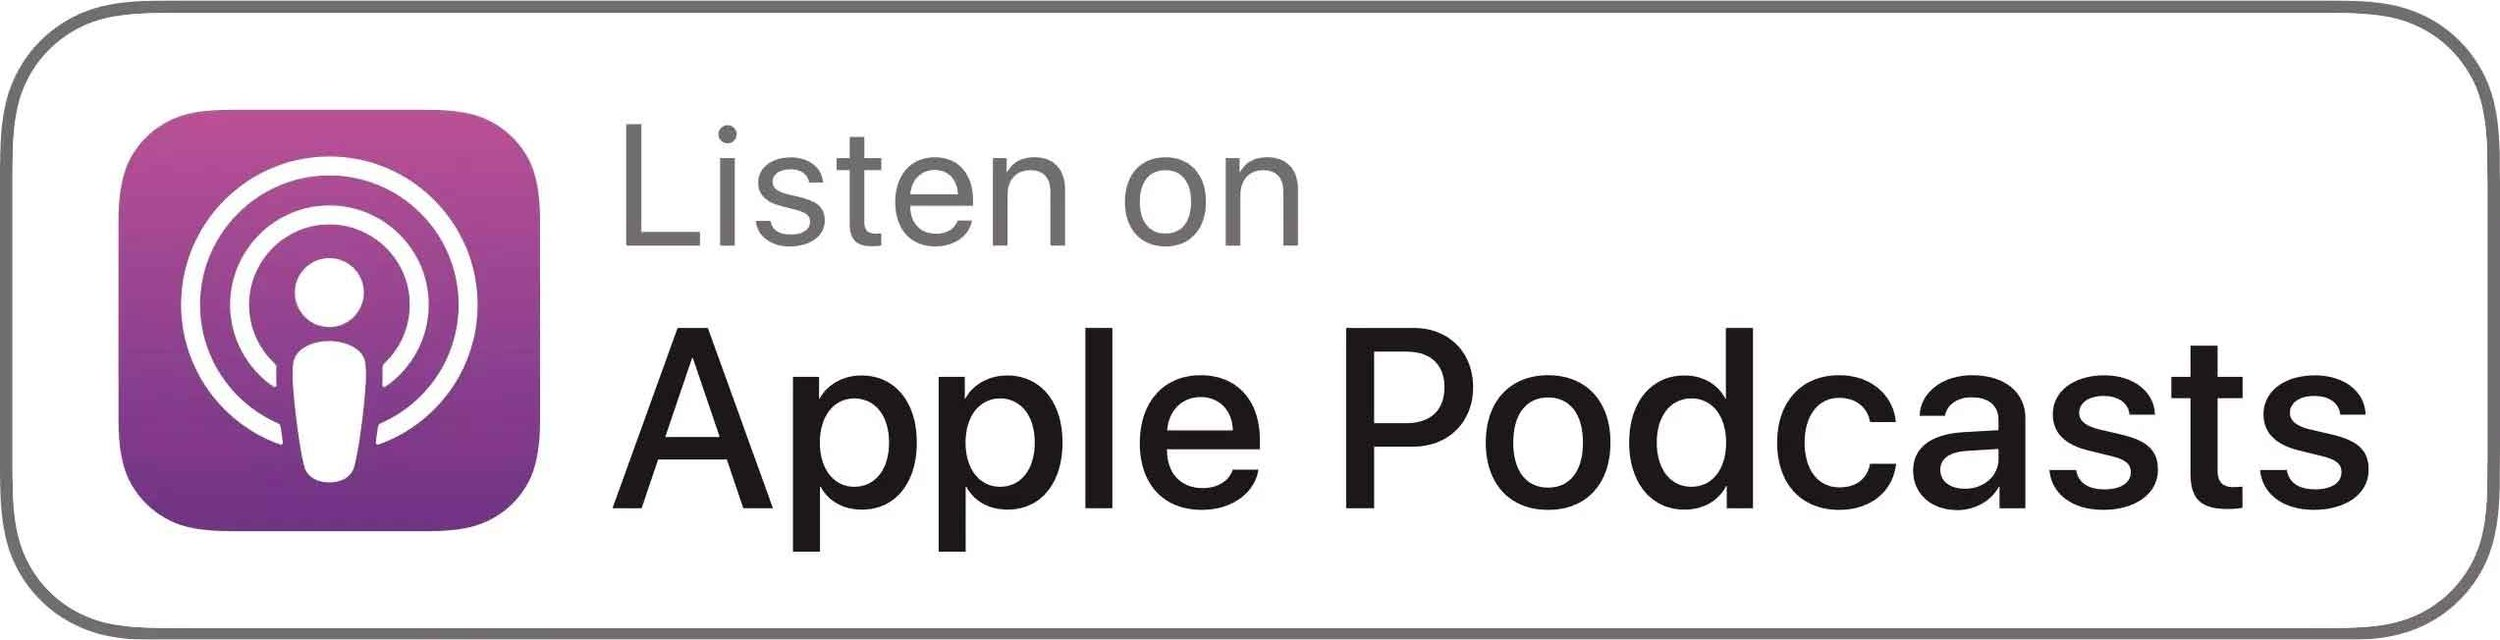 apple-podcast-logo.jpg